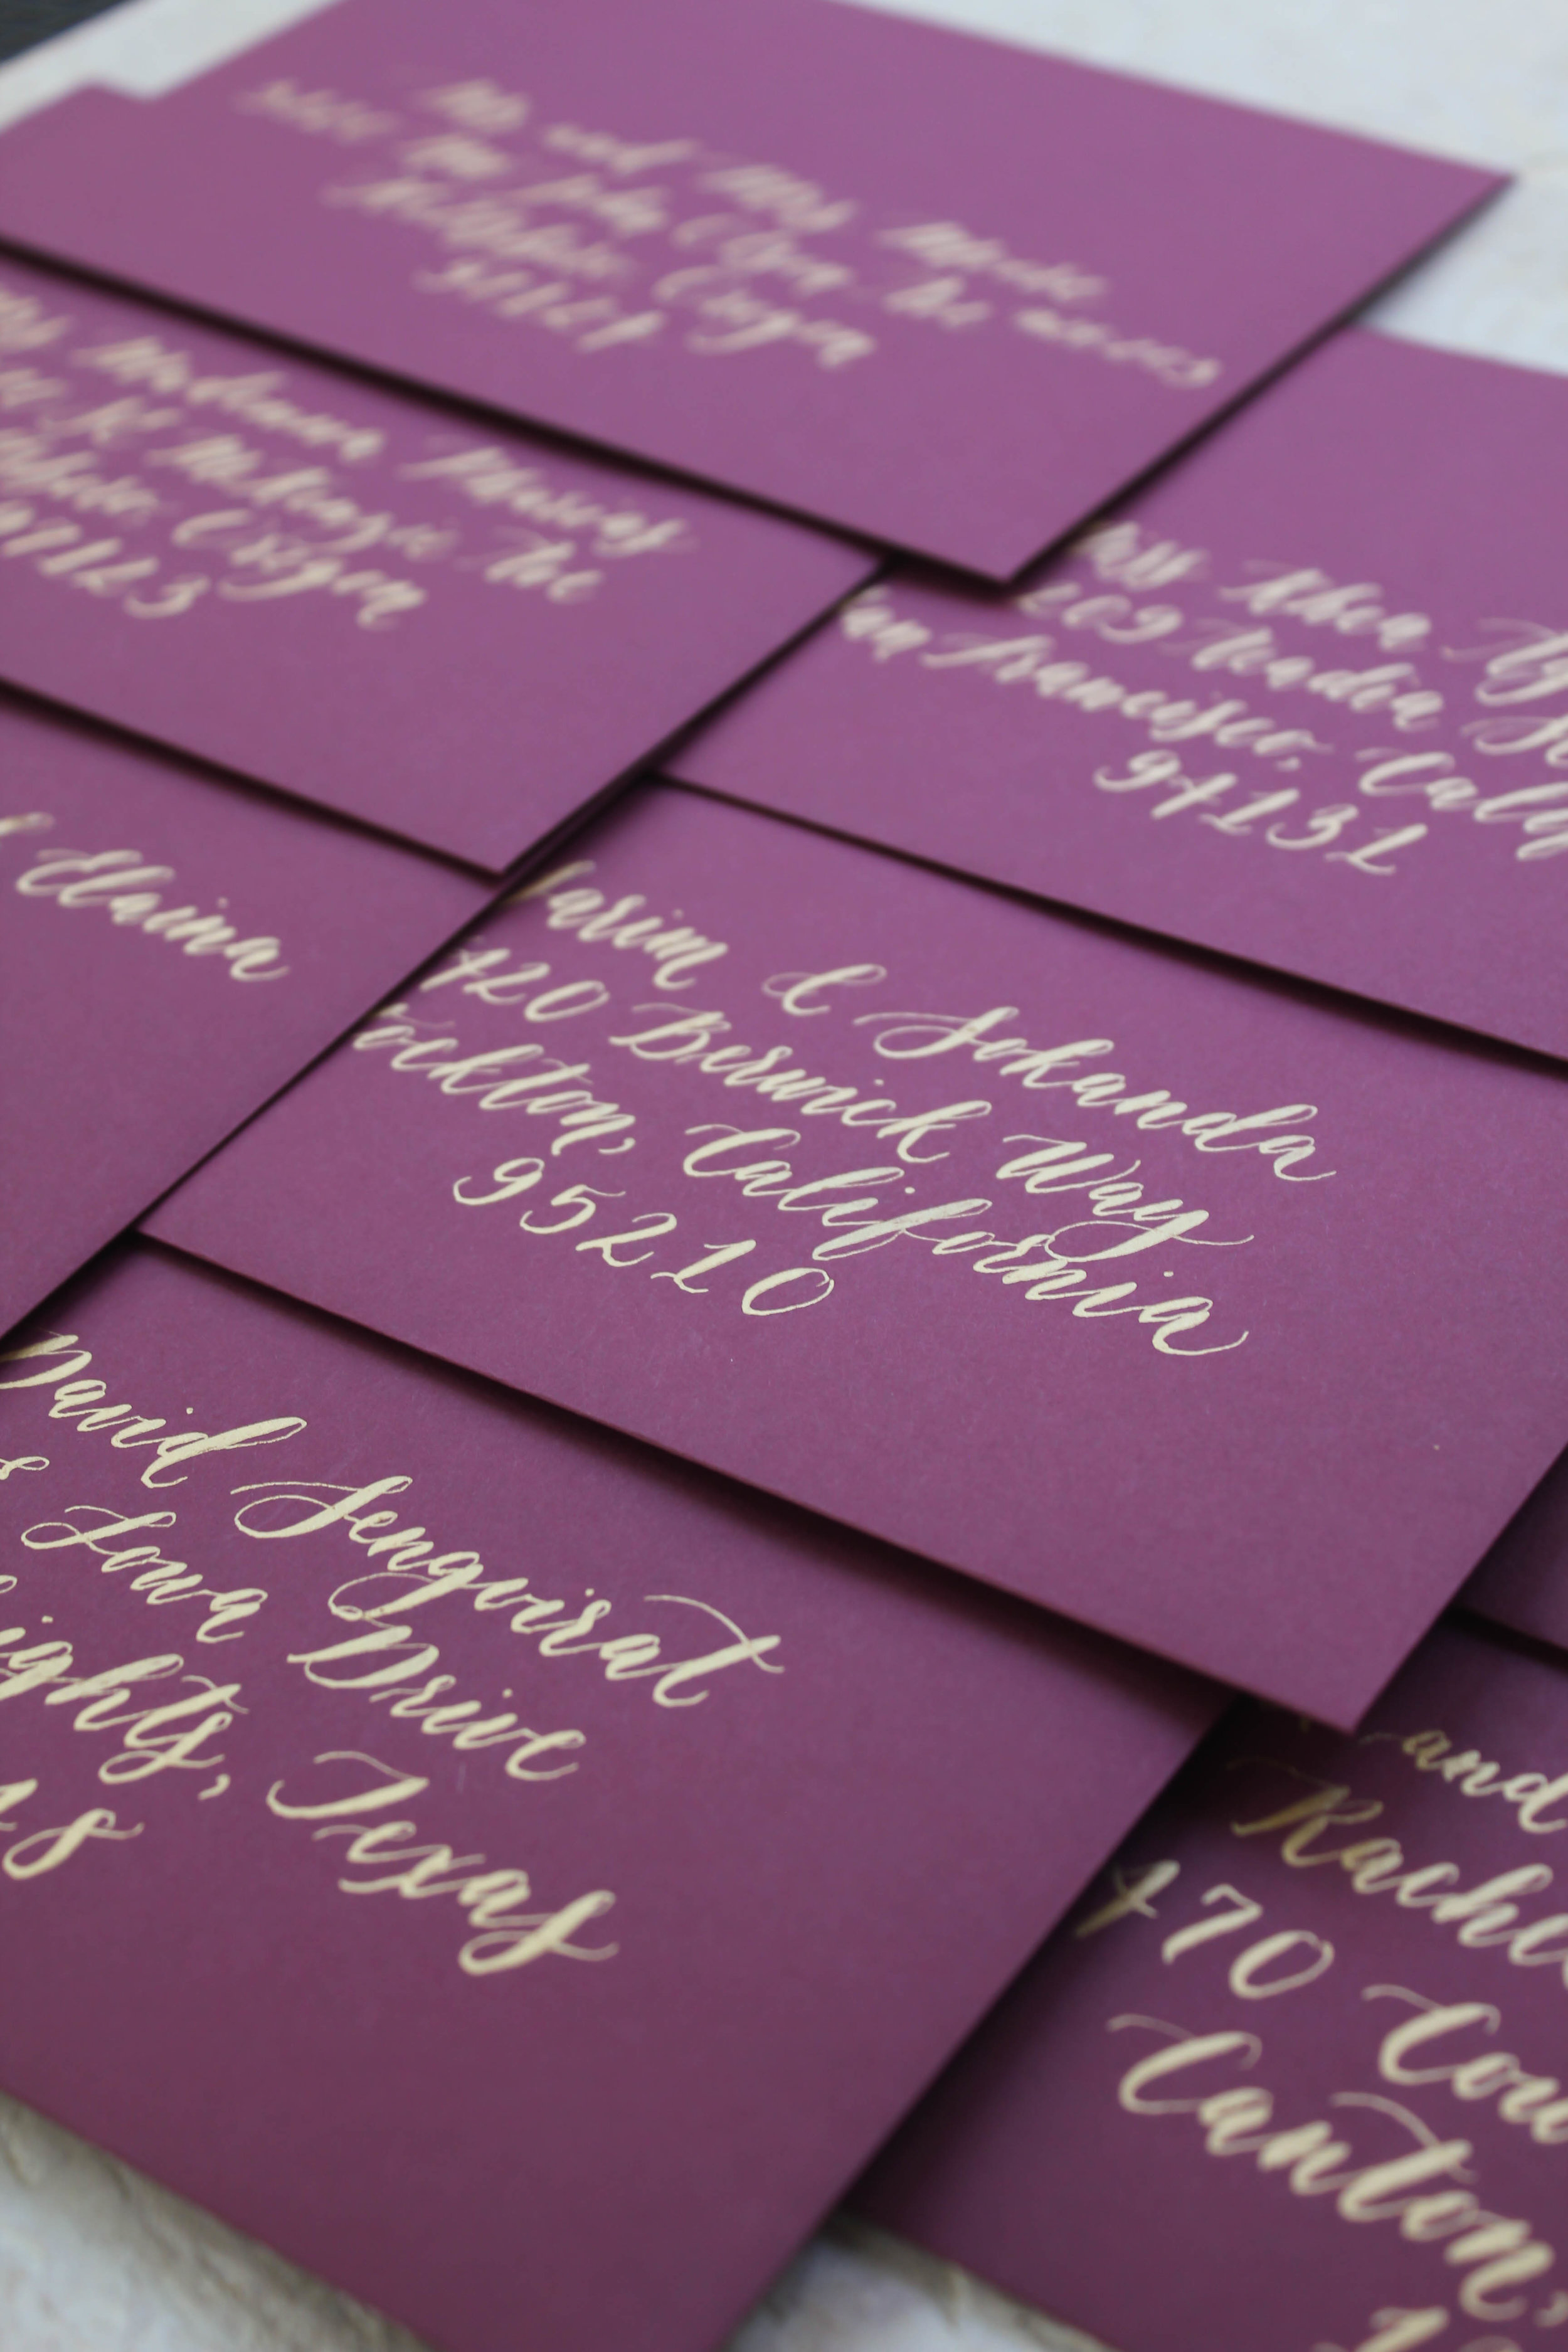 A gorgeous combination of gold ink on burgundy/wine colored envelopes